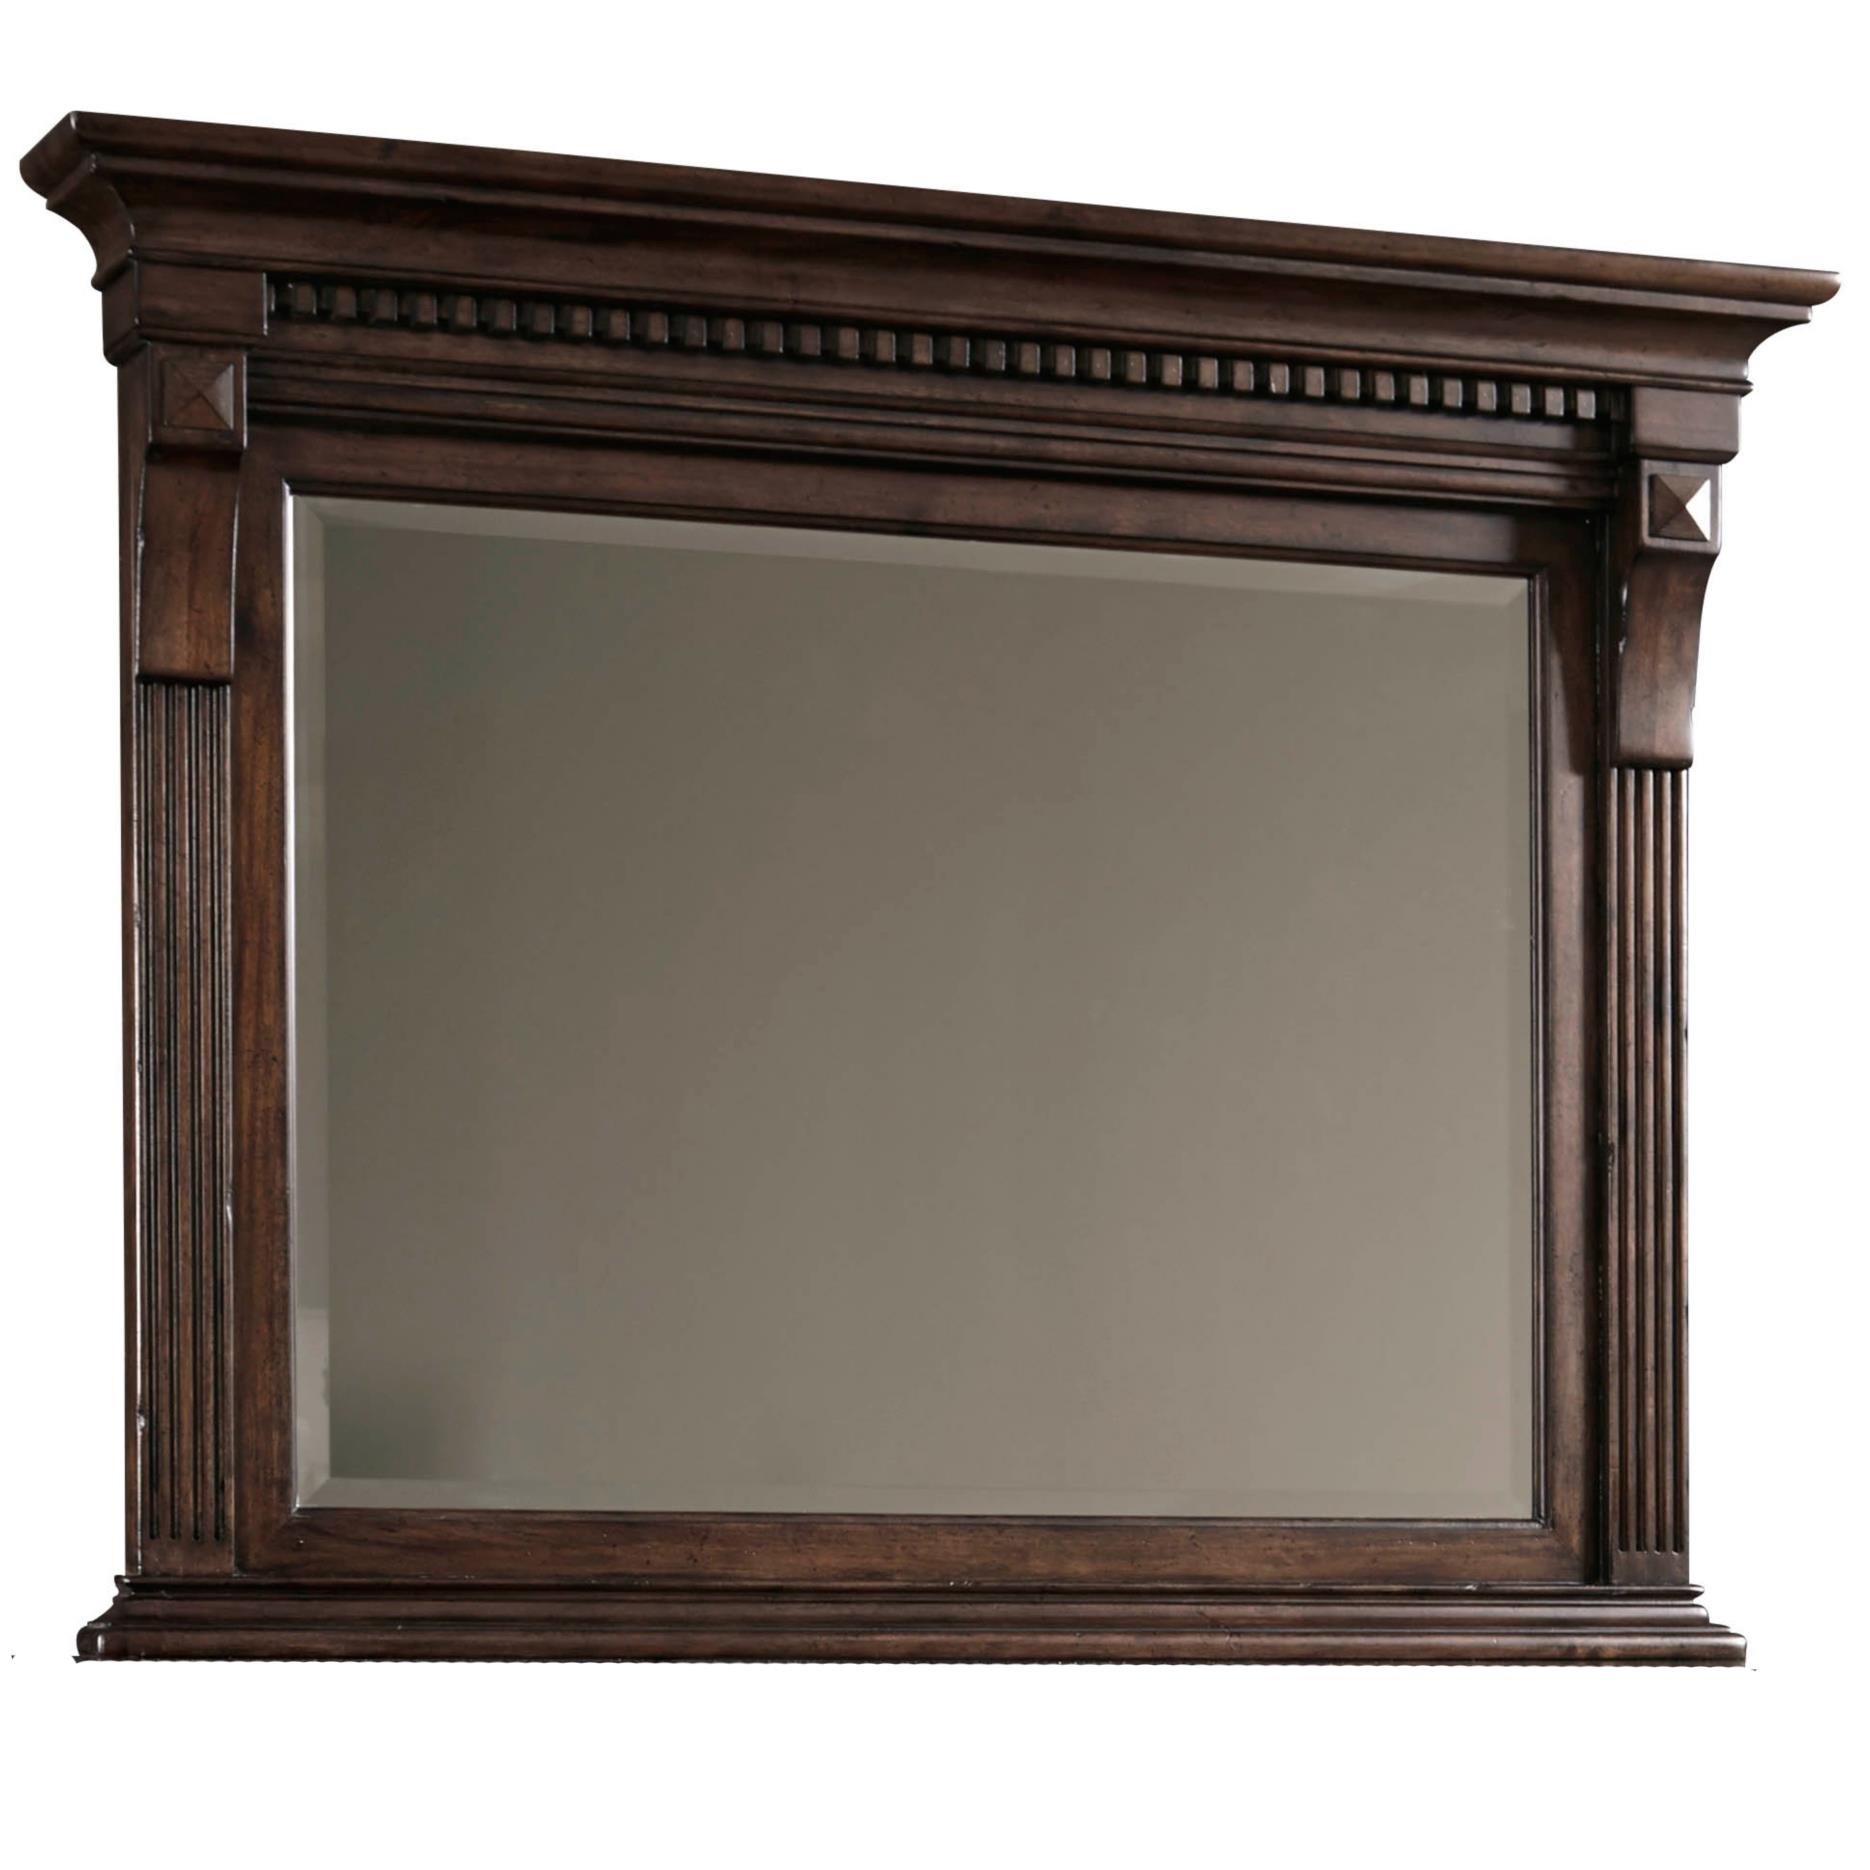 Broyhill Furniture Lyla Chesser Mirror - Item Number: 4912-237